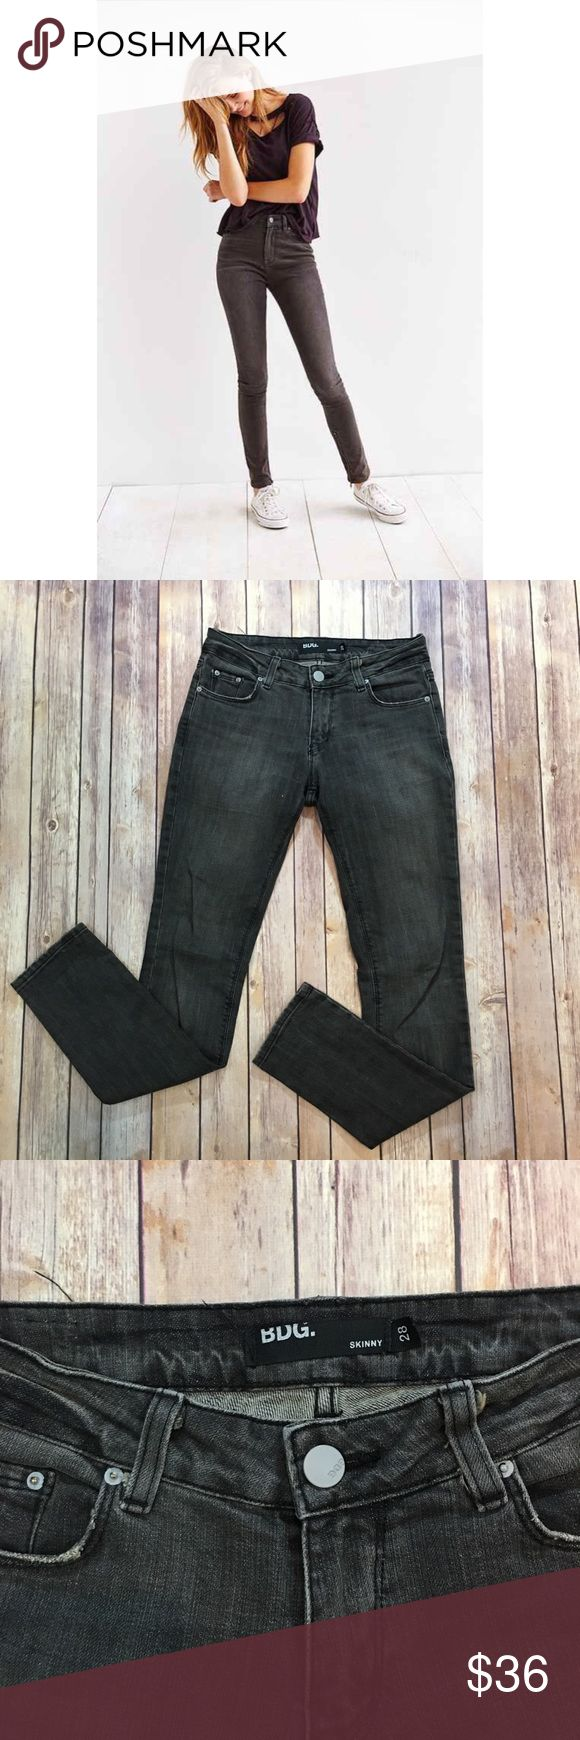 """BDG Faded Black Skinny Jeans BDG Faded Black Skinny Jeans. Front rise 9""""/back 11"""". Inseam 32"""". (B003) Urban Outfitters Jeans Skinny"""